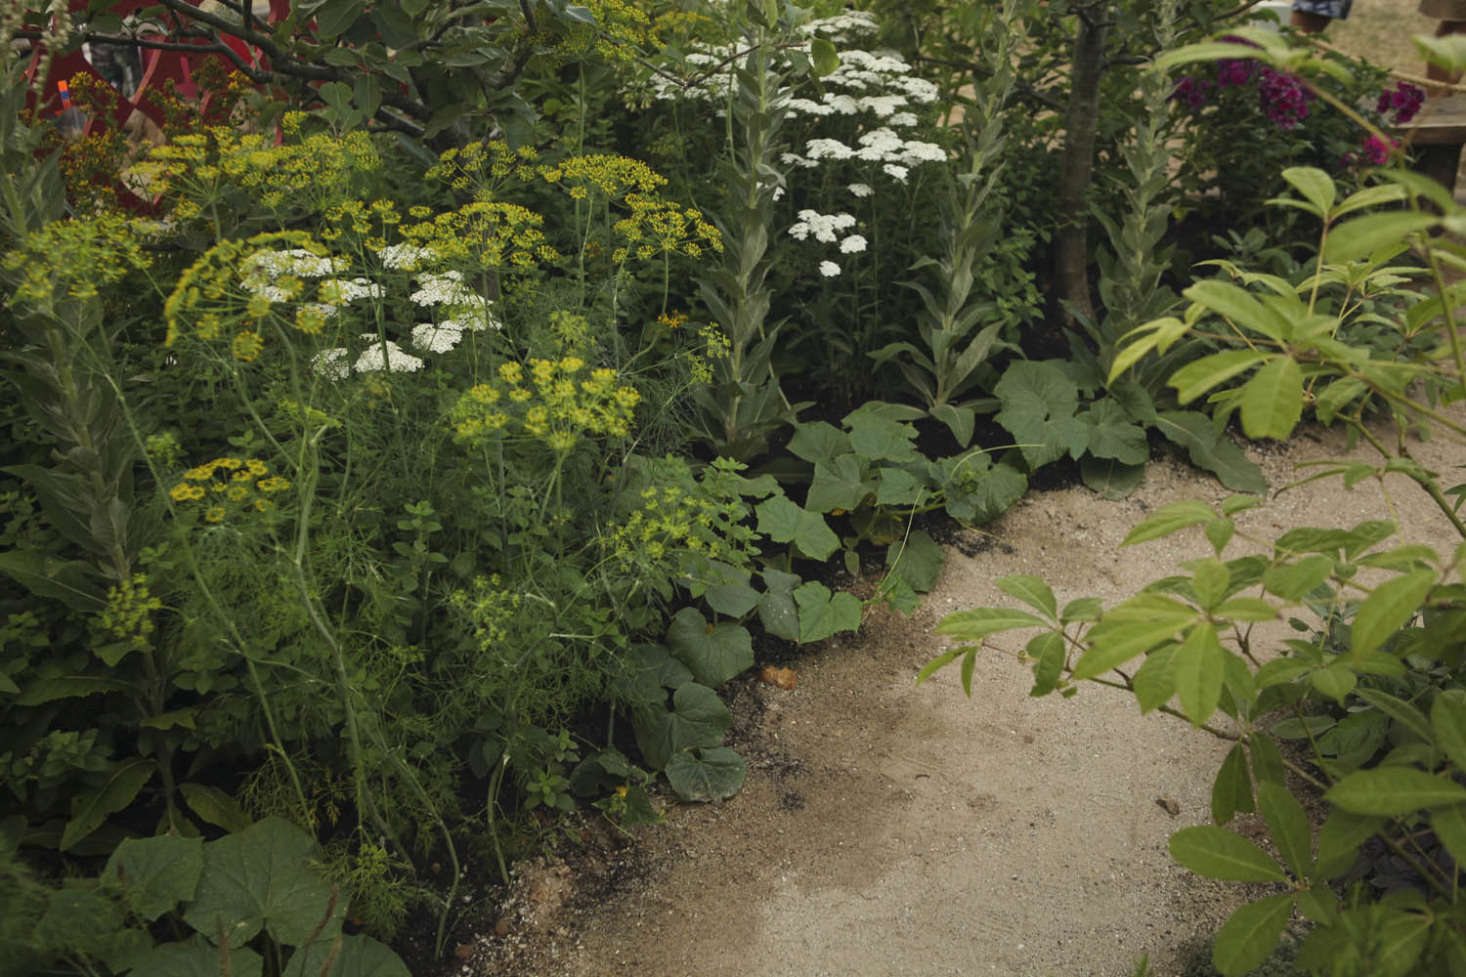 Dill (Anethum graveolens) grows close to cucumbers crawling along the ground. Also pictured is white yarrow (Achilleum millefolium &#8